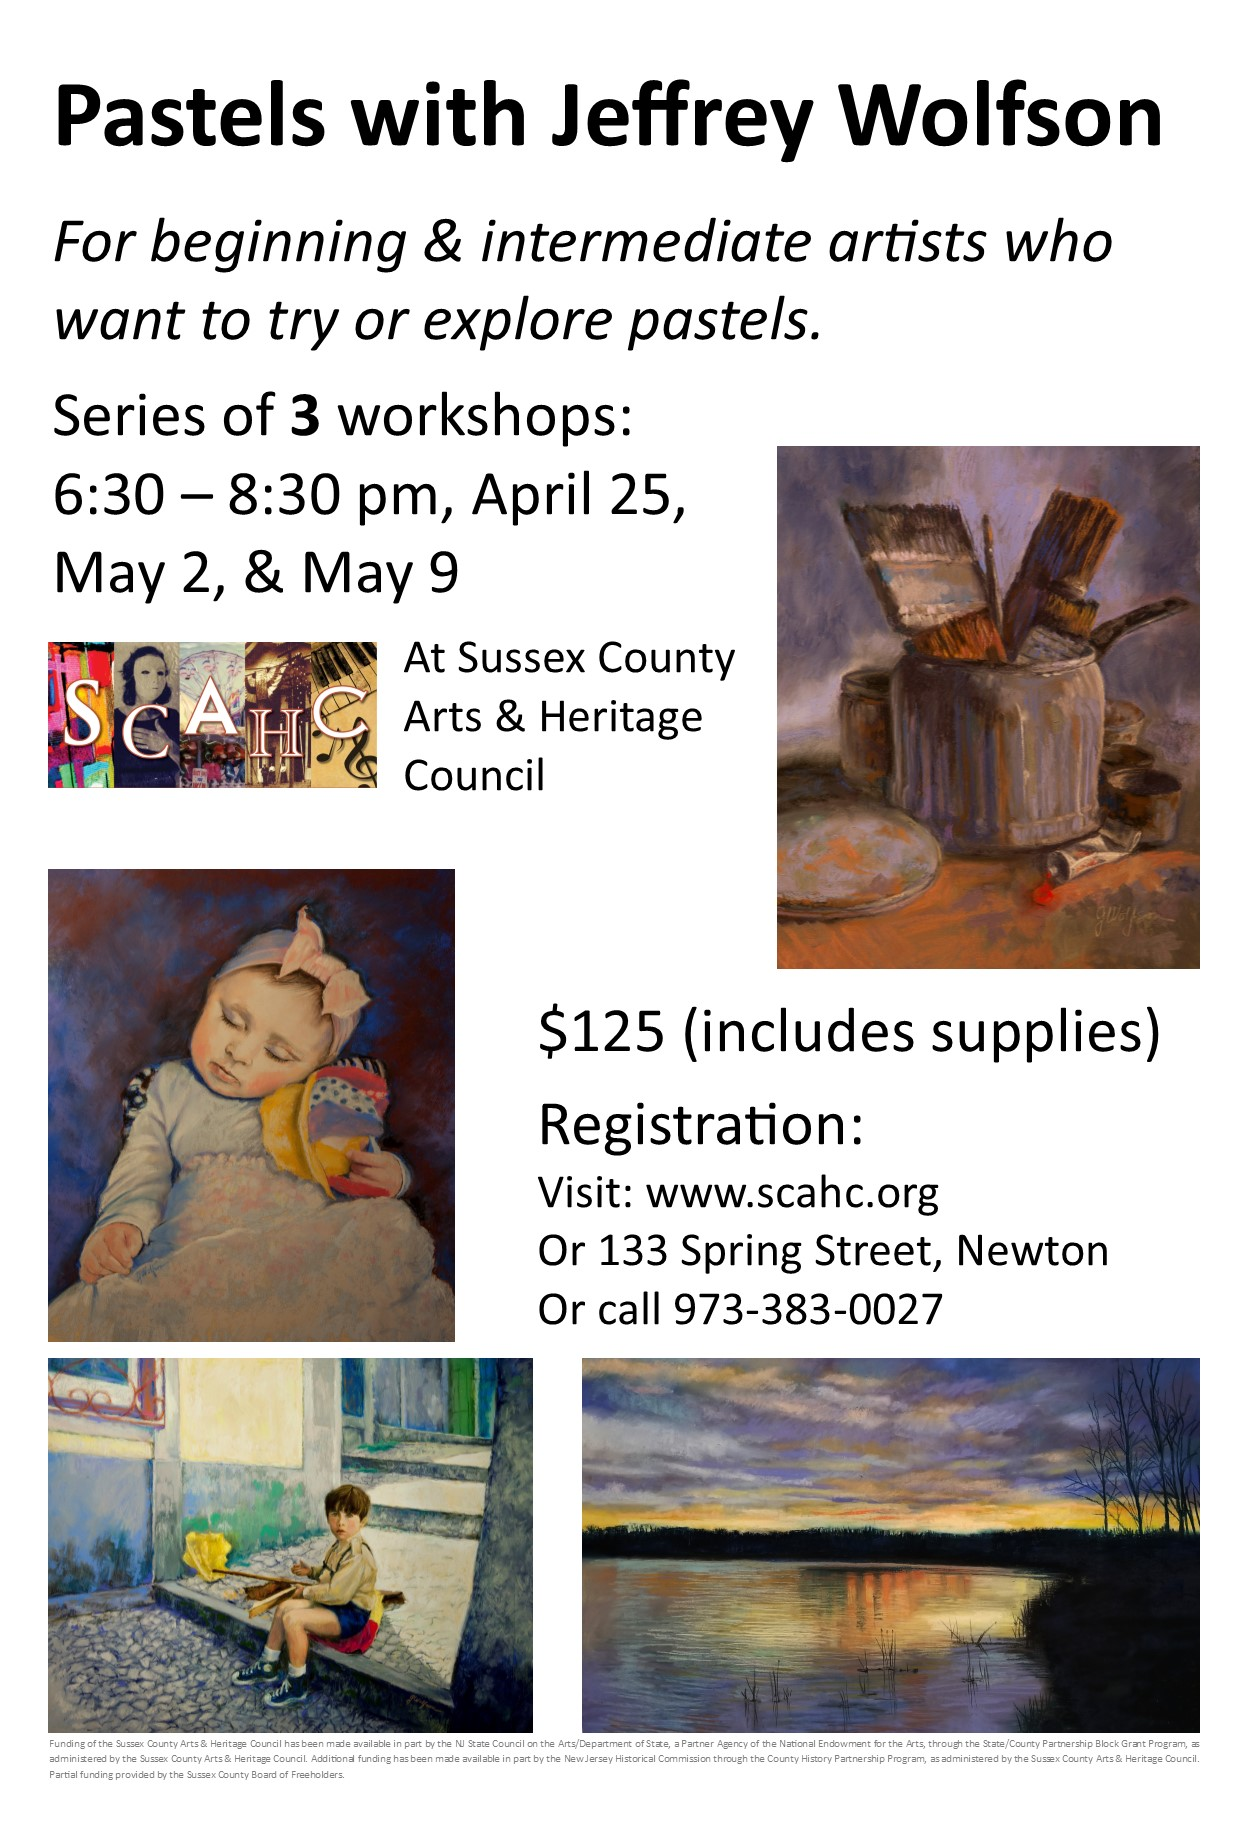 Flyer for Jeffrey Wolfson Pastel Workshop Series